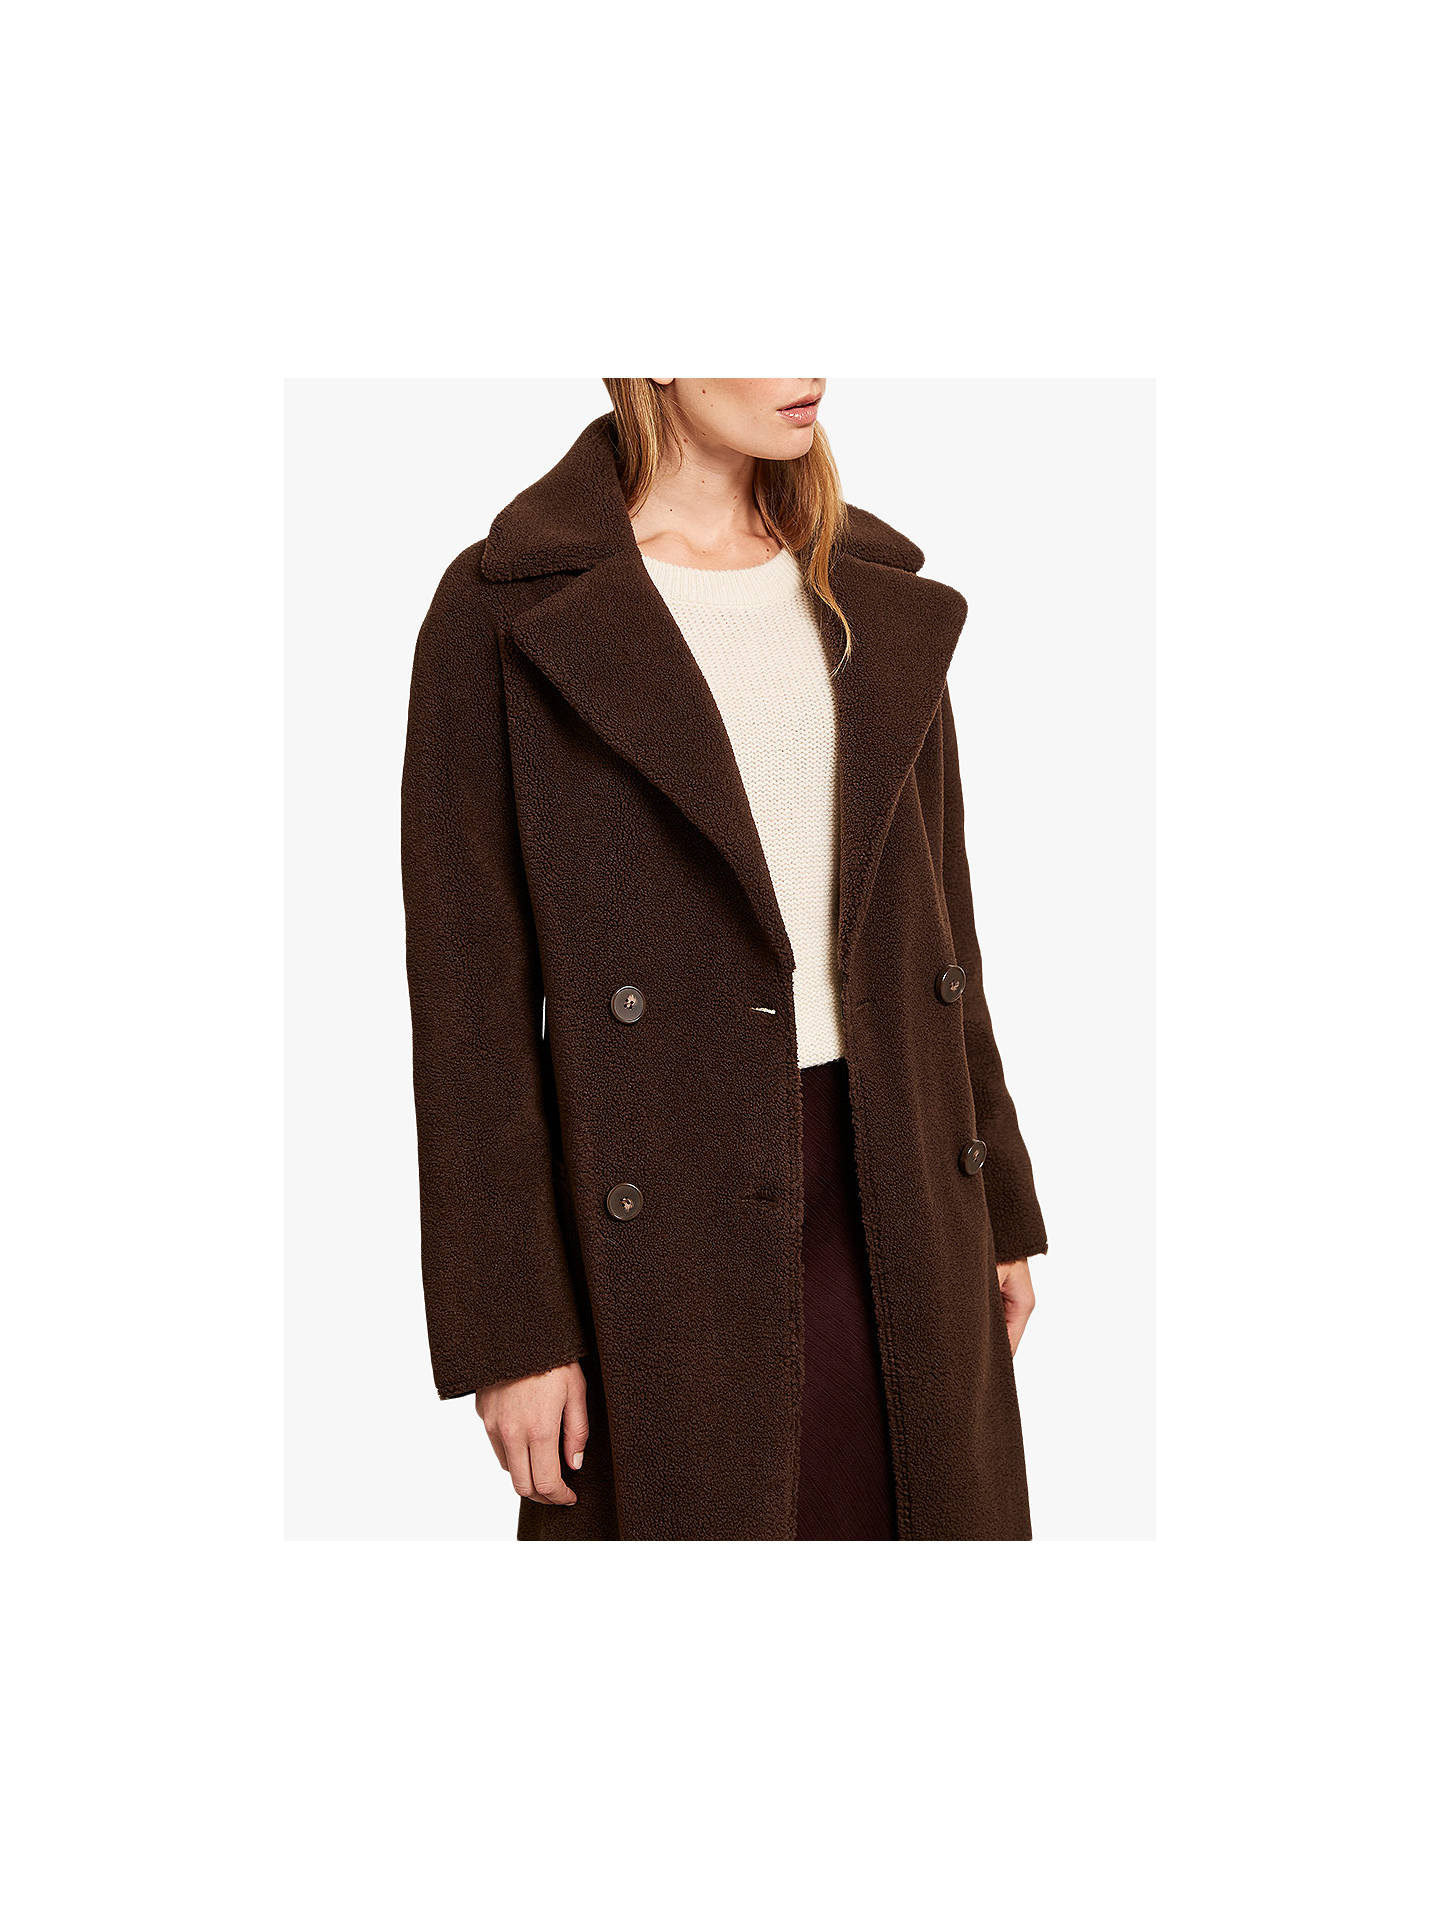 Brown Long Length Teddy Coat Charlotte from Femme Luxe on 21 Buttons